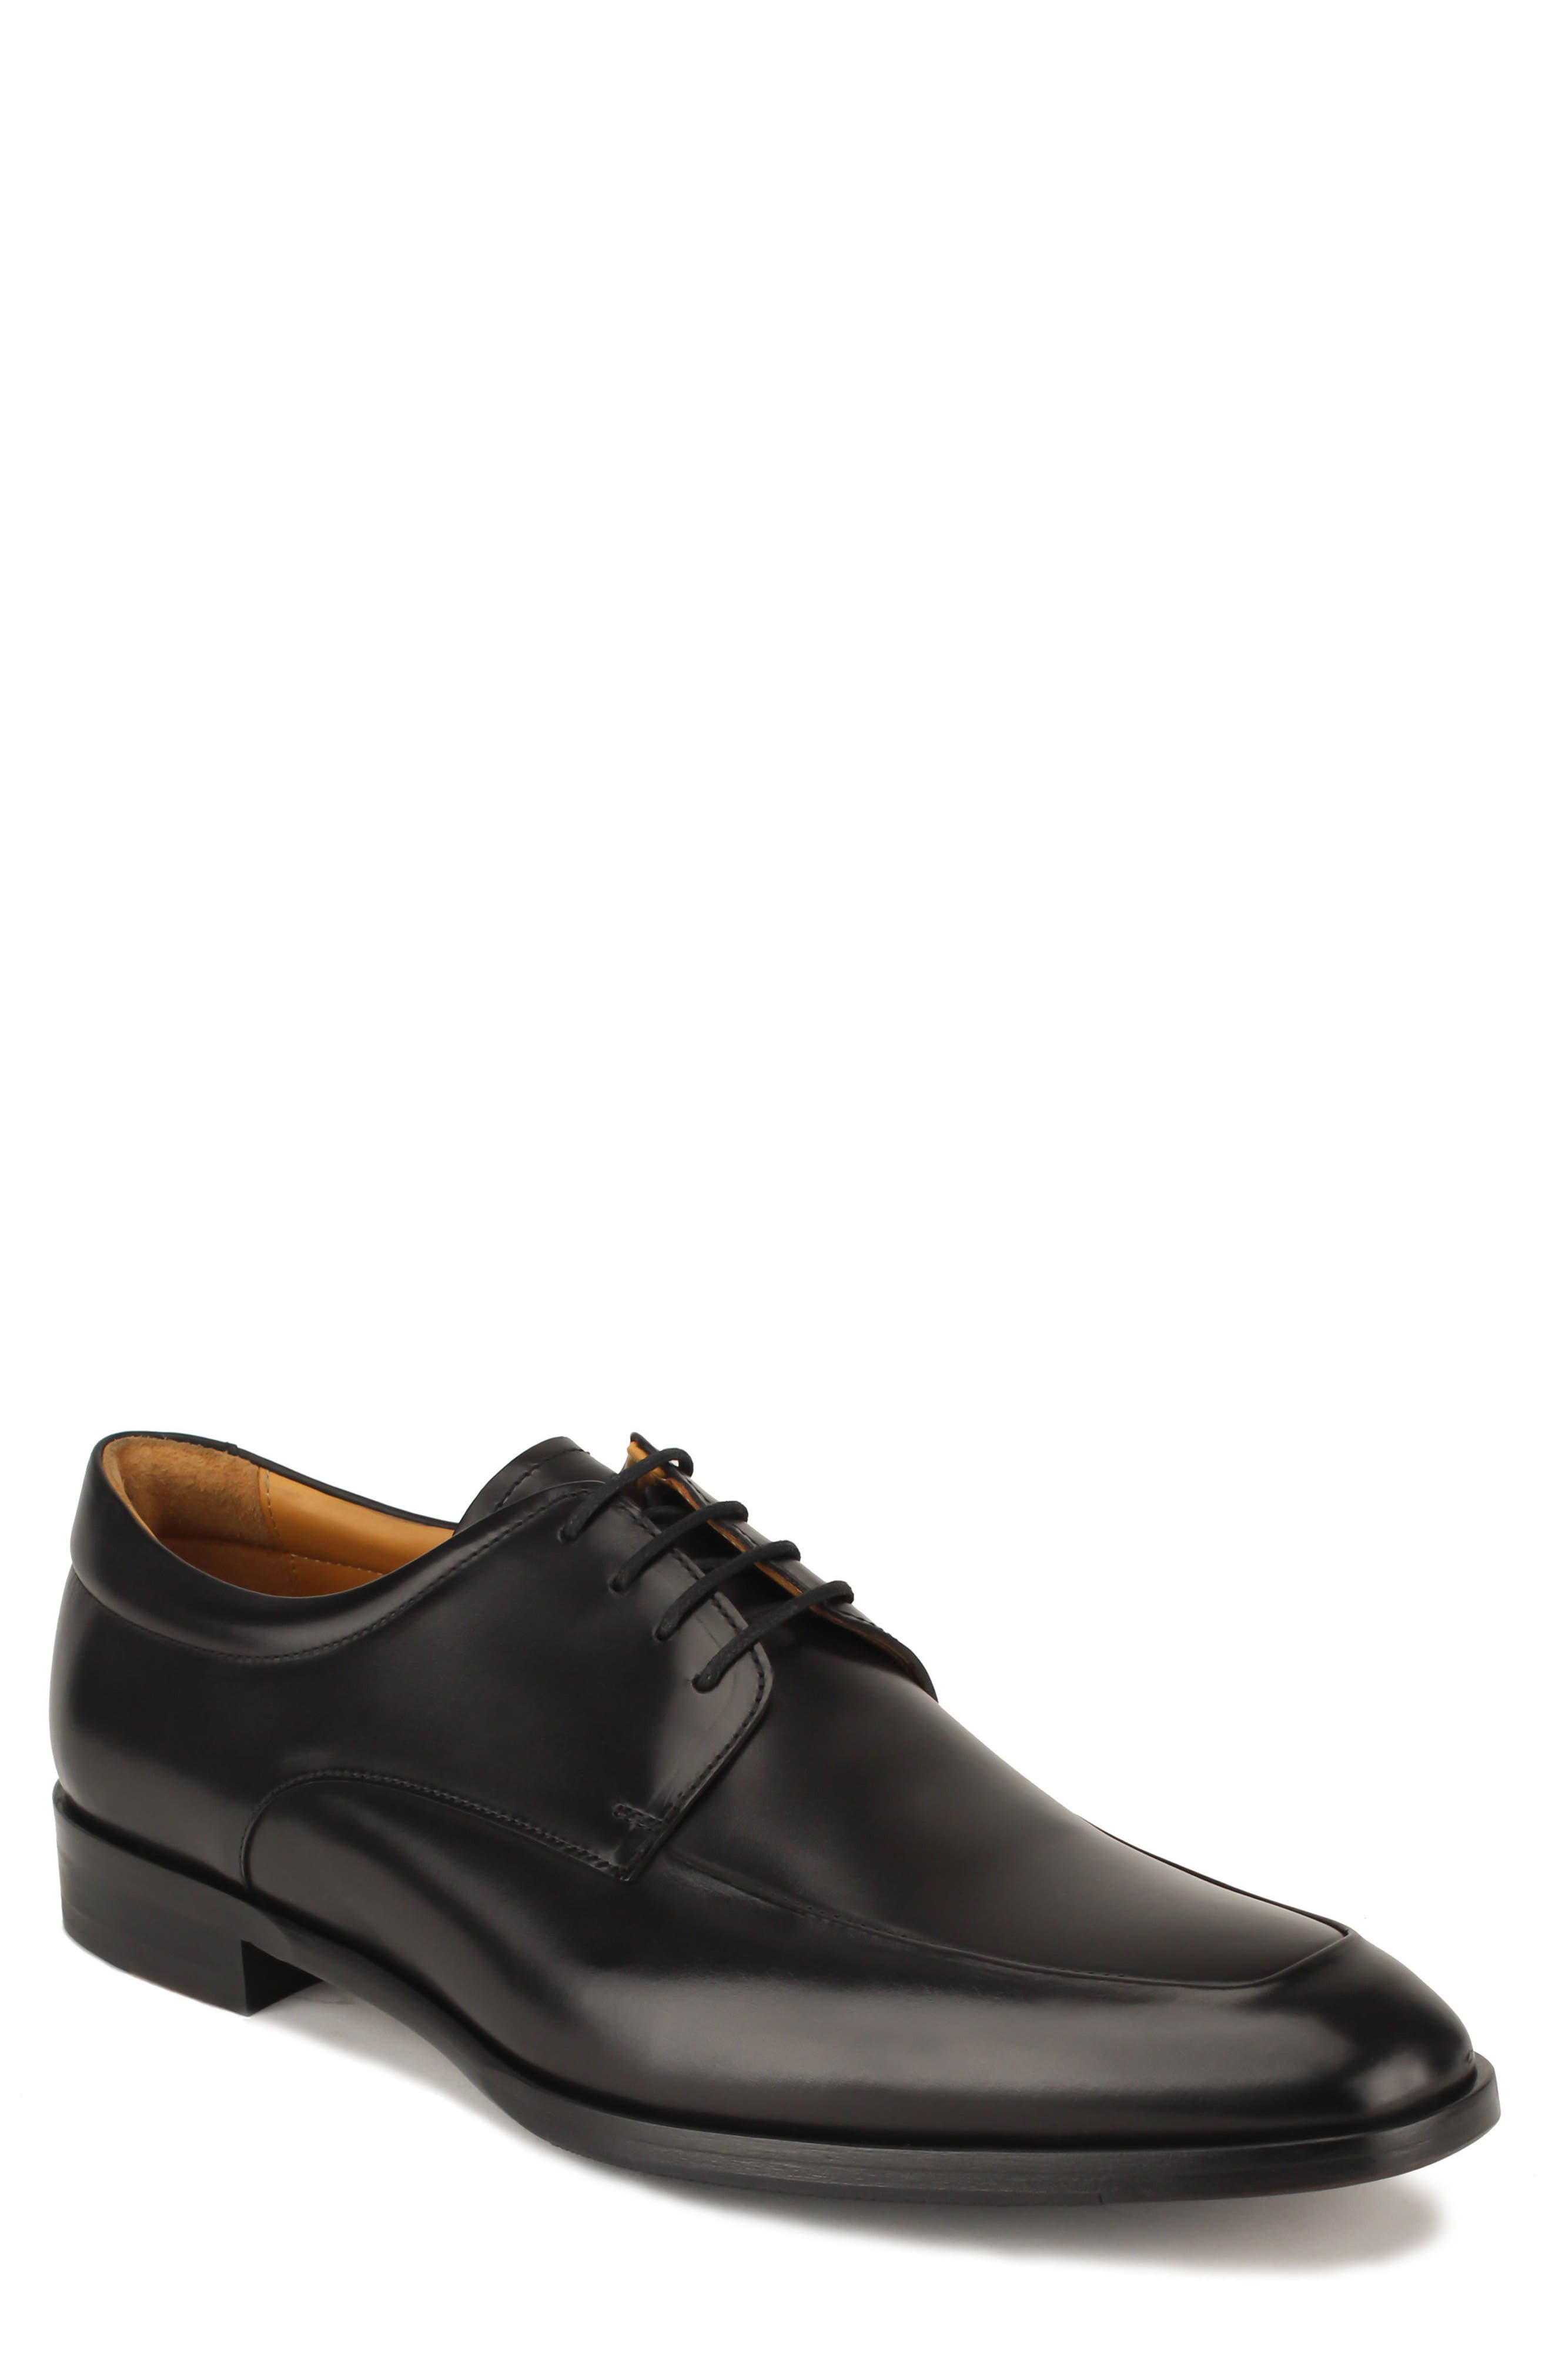 Reading II Apron Toe Derby,                         Main,                         color, Black Leather